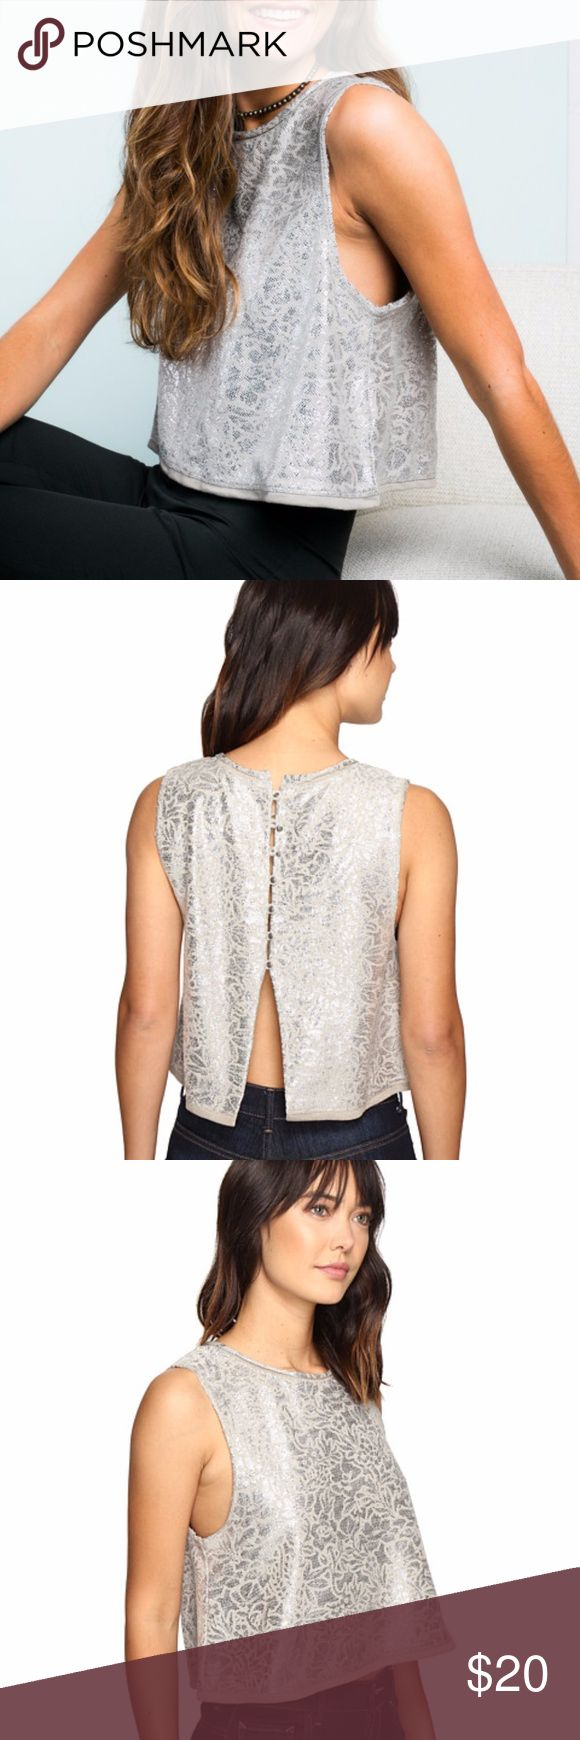 "Free People Casual Fancy Silver Crop Top New with tags!  A simple and swingy shape and dropped armholes put a casual finish on a shimmering cotton-blend top. The femme look fastens in back for a clean look in front. 19"" Length  Back button closures Scooped neck Sleeveless 80% cotton, 20% polyester Hand wash cold, dry flat Free People Tops Crop Tops"